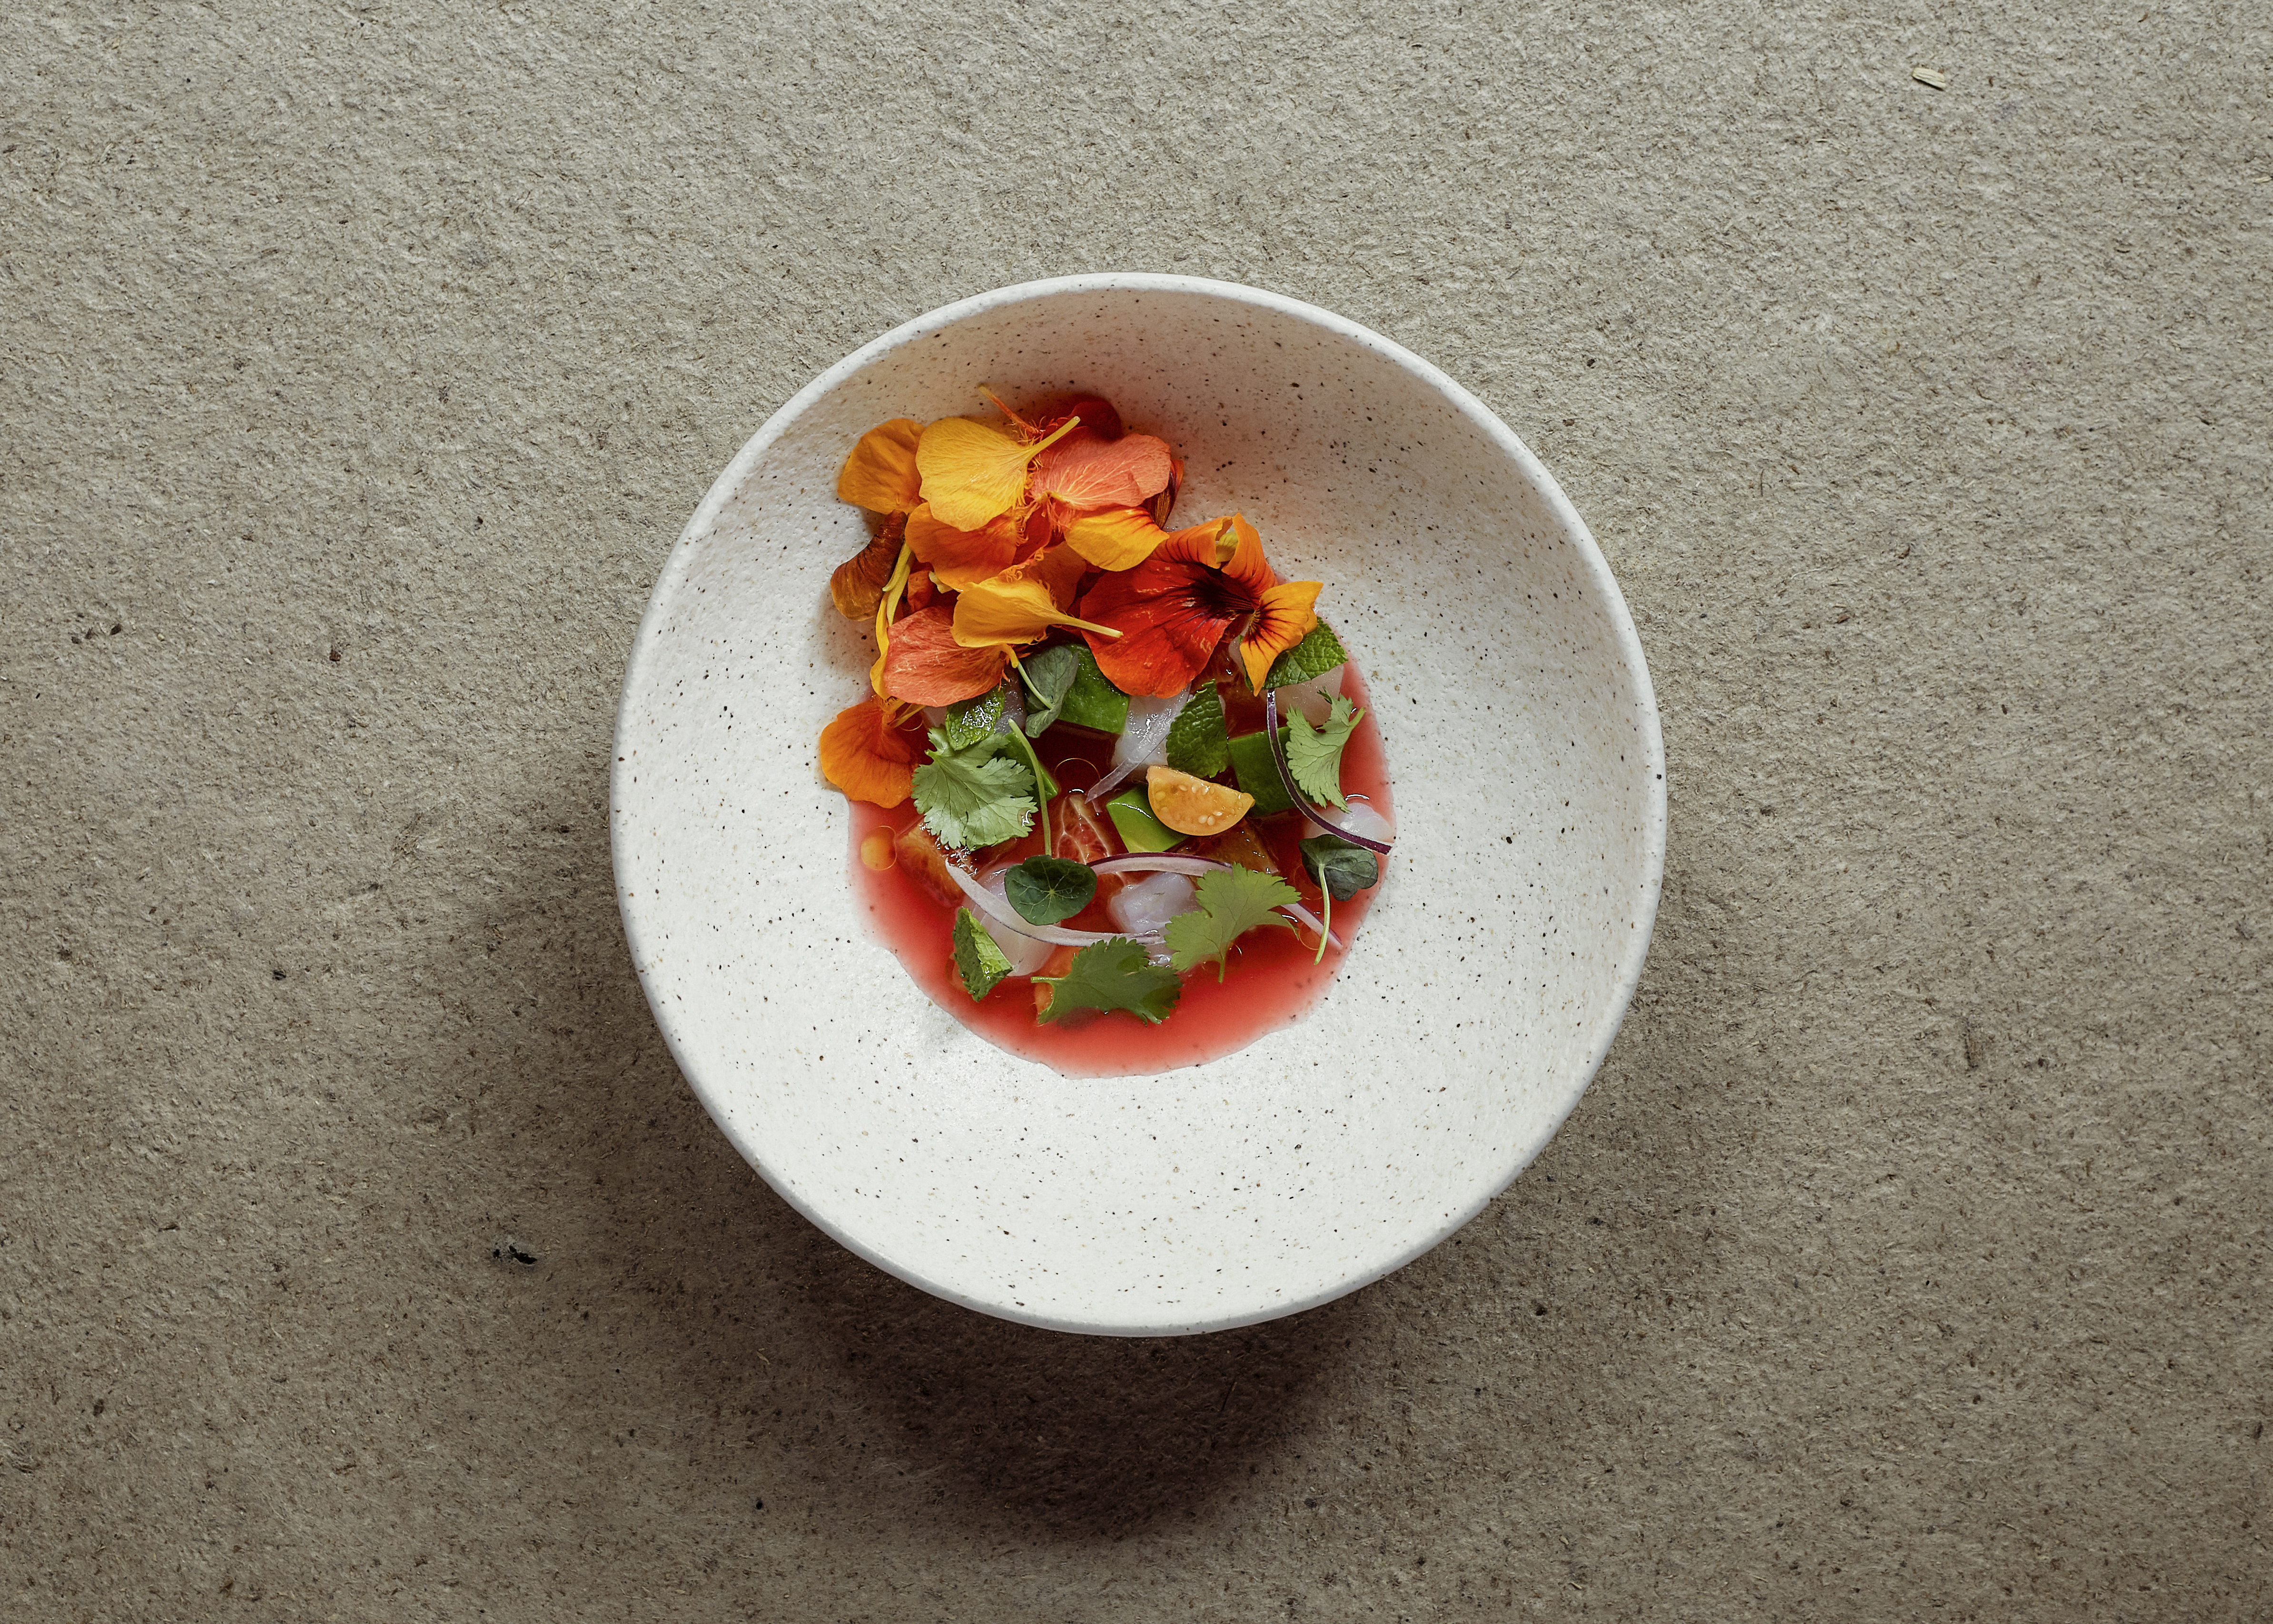 Yopo restaurant at Fitzrovia hotel The Mandrake will serve South American-inspired food